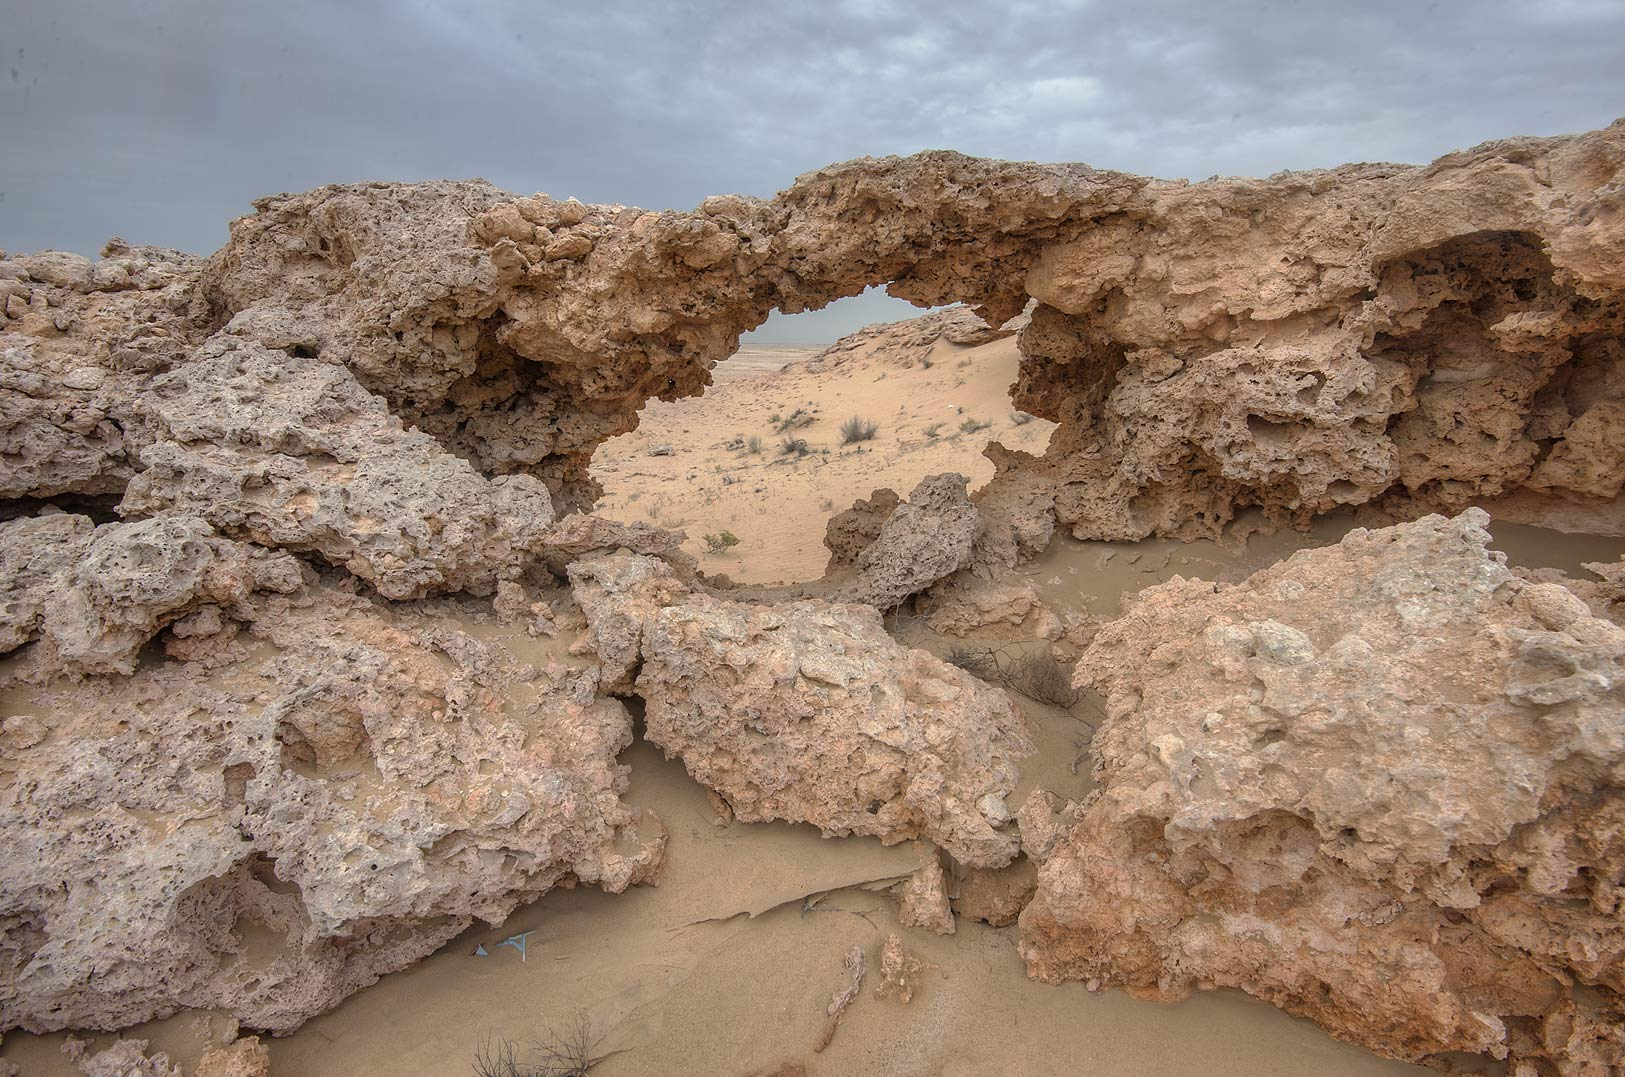 Small limestone arch on a mountain slope in Harrarah (Al Kharrarah). Southern Qatar